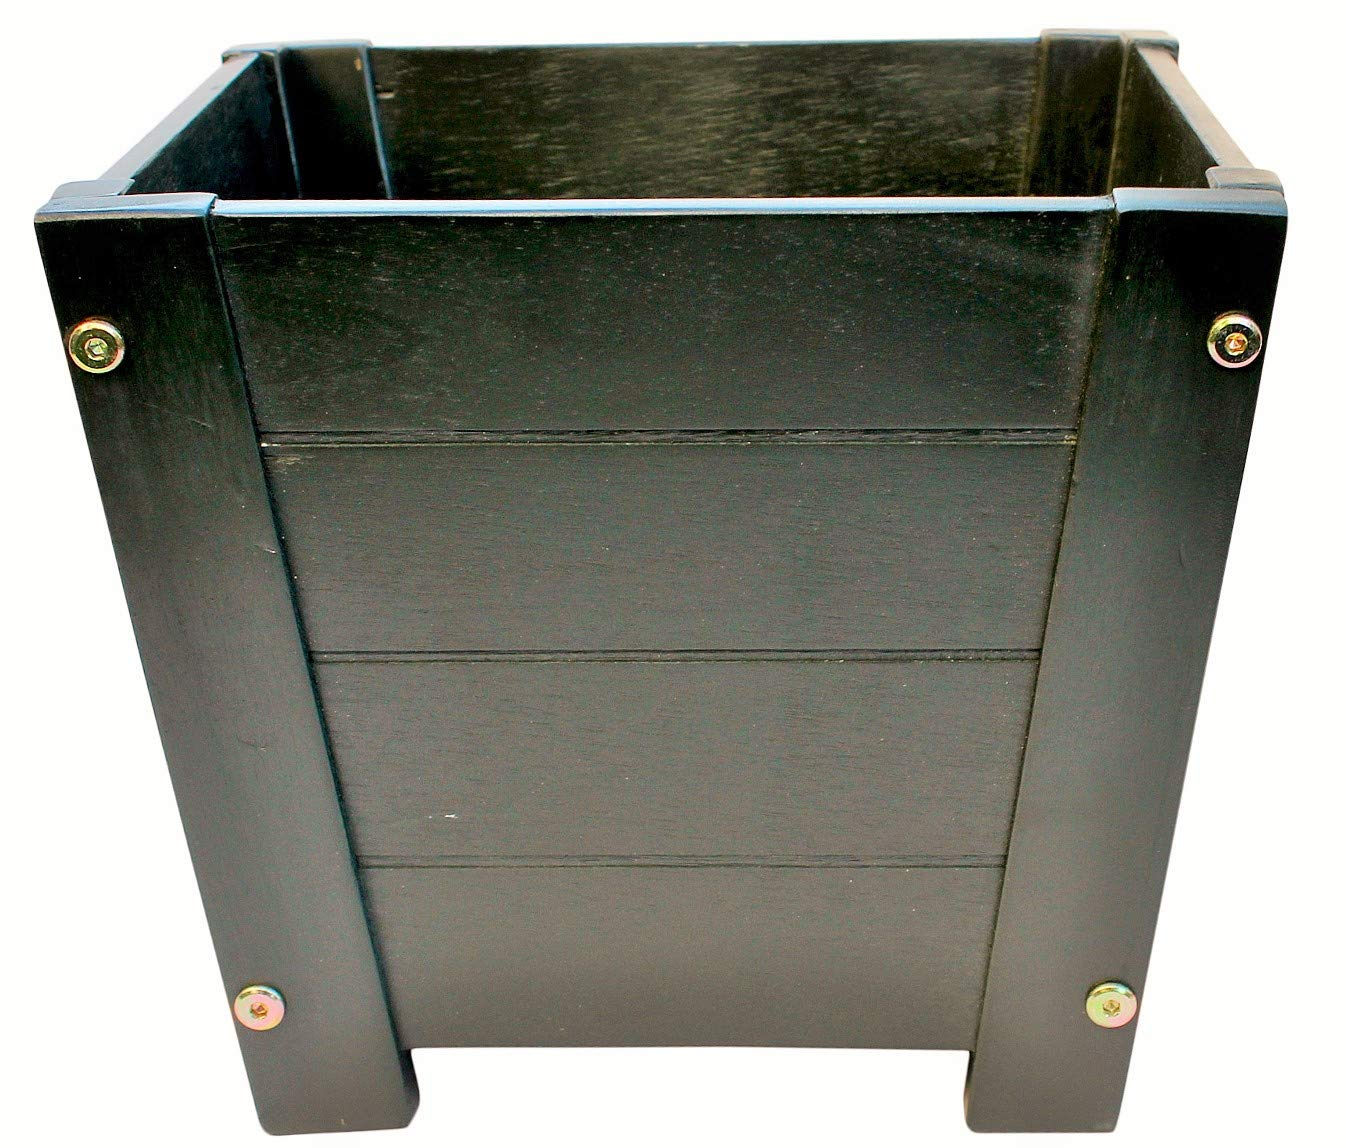 Happy Planter HP304XXL Wood Barrel Outdoor Planter, Set of 3 Planters,  Color: Solid Hunter Green